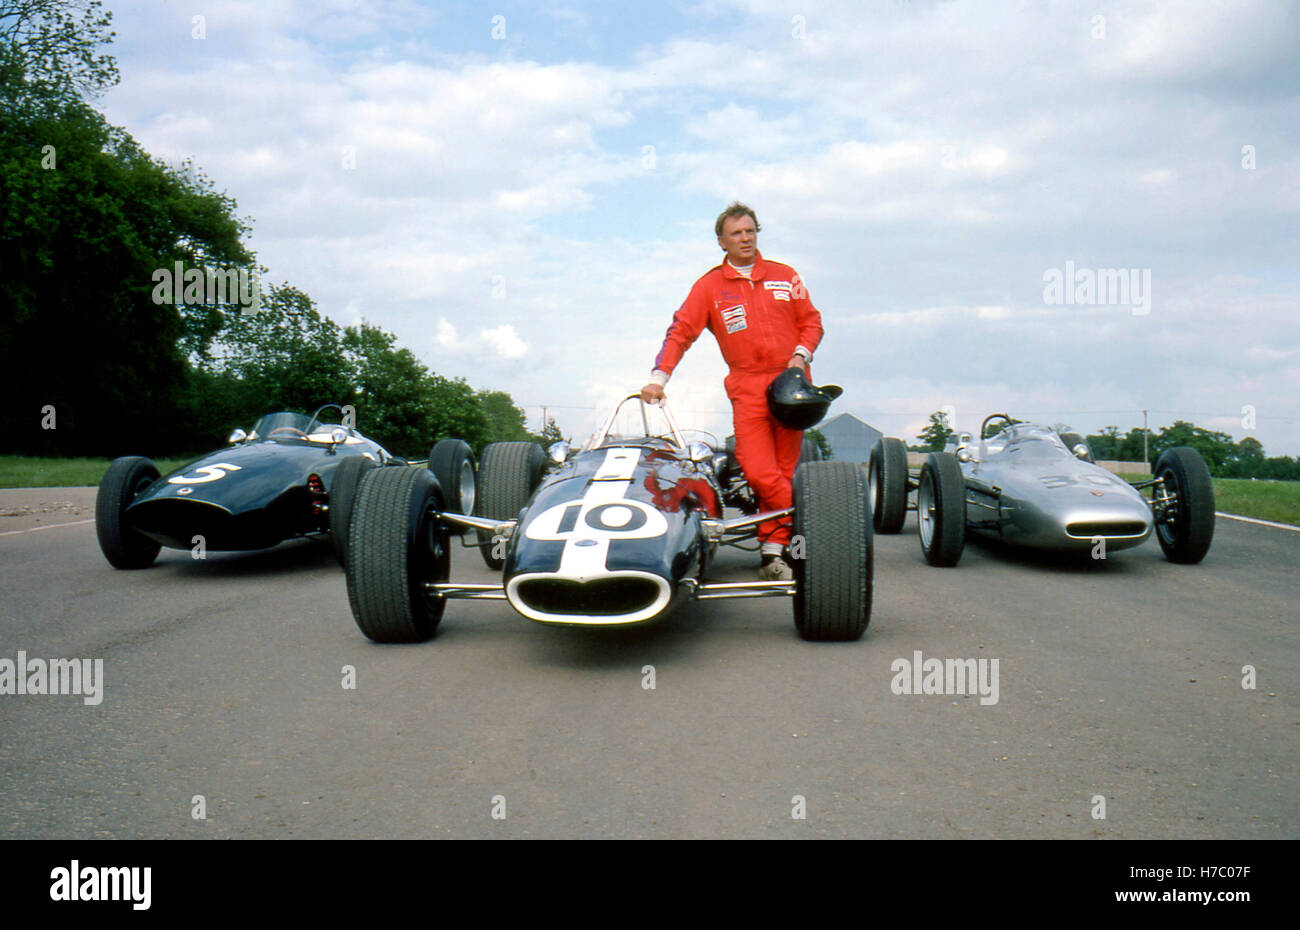 1989 DAN GURNEY DONINGTON BRM P48 - EAGLE-CLIMAX - Porsche 804 Photo Stock